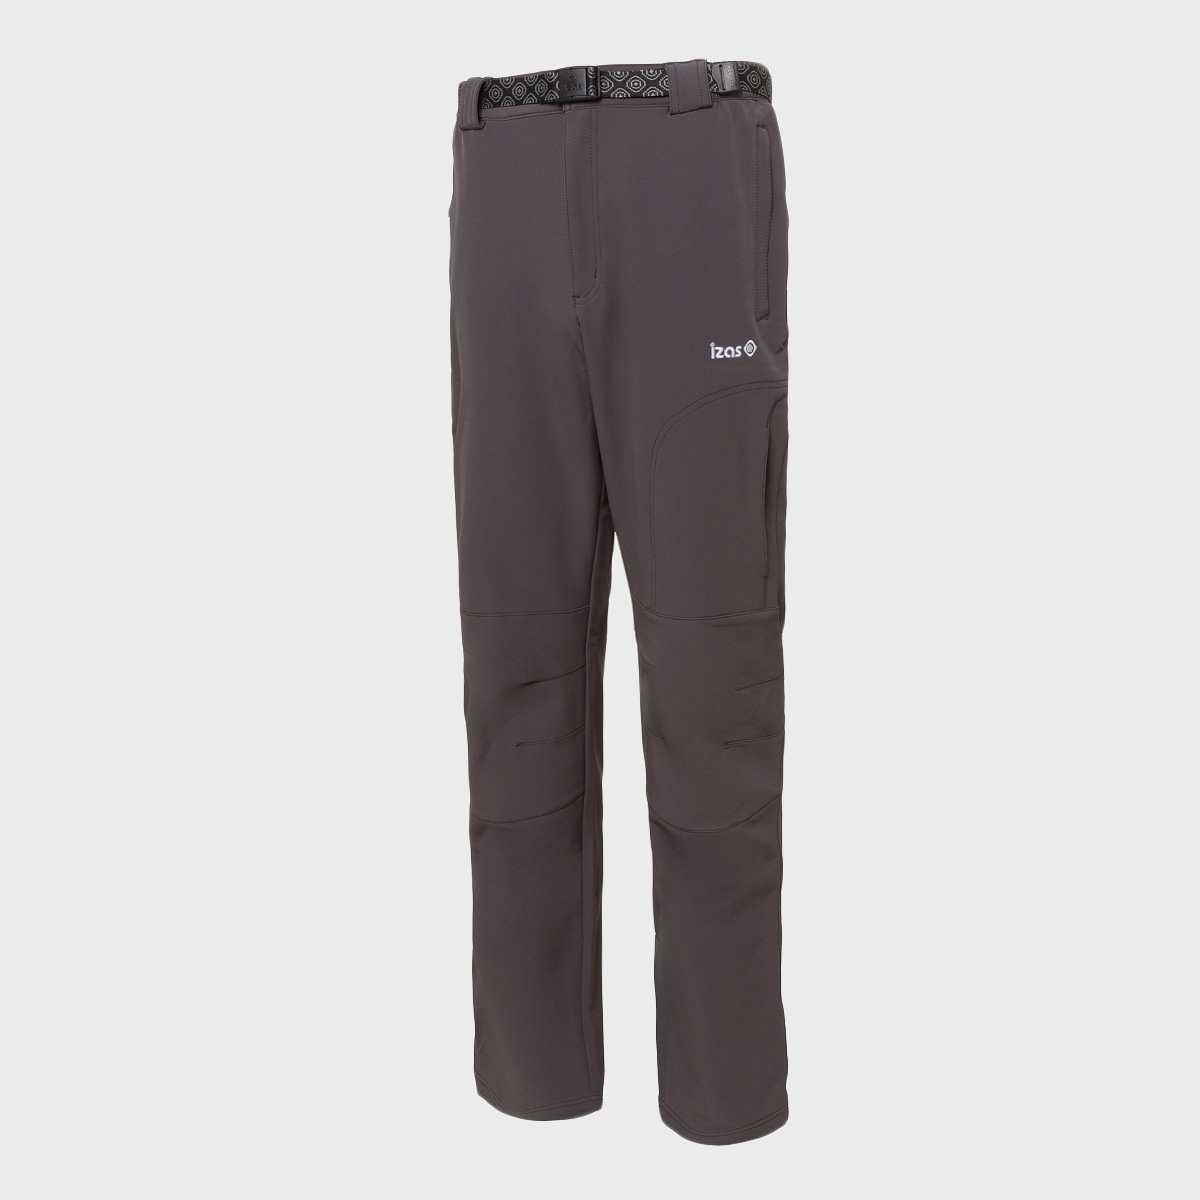 PANTALON LARGO CORTAVIENTOS  92% POLYESTER 8% ELASTANE 240-250 GR RELAXED FIT WATER REPELENT MOUNT-STRETCH DRY WHEATHER PROTECTION DARK GREY